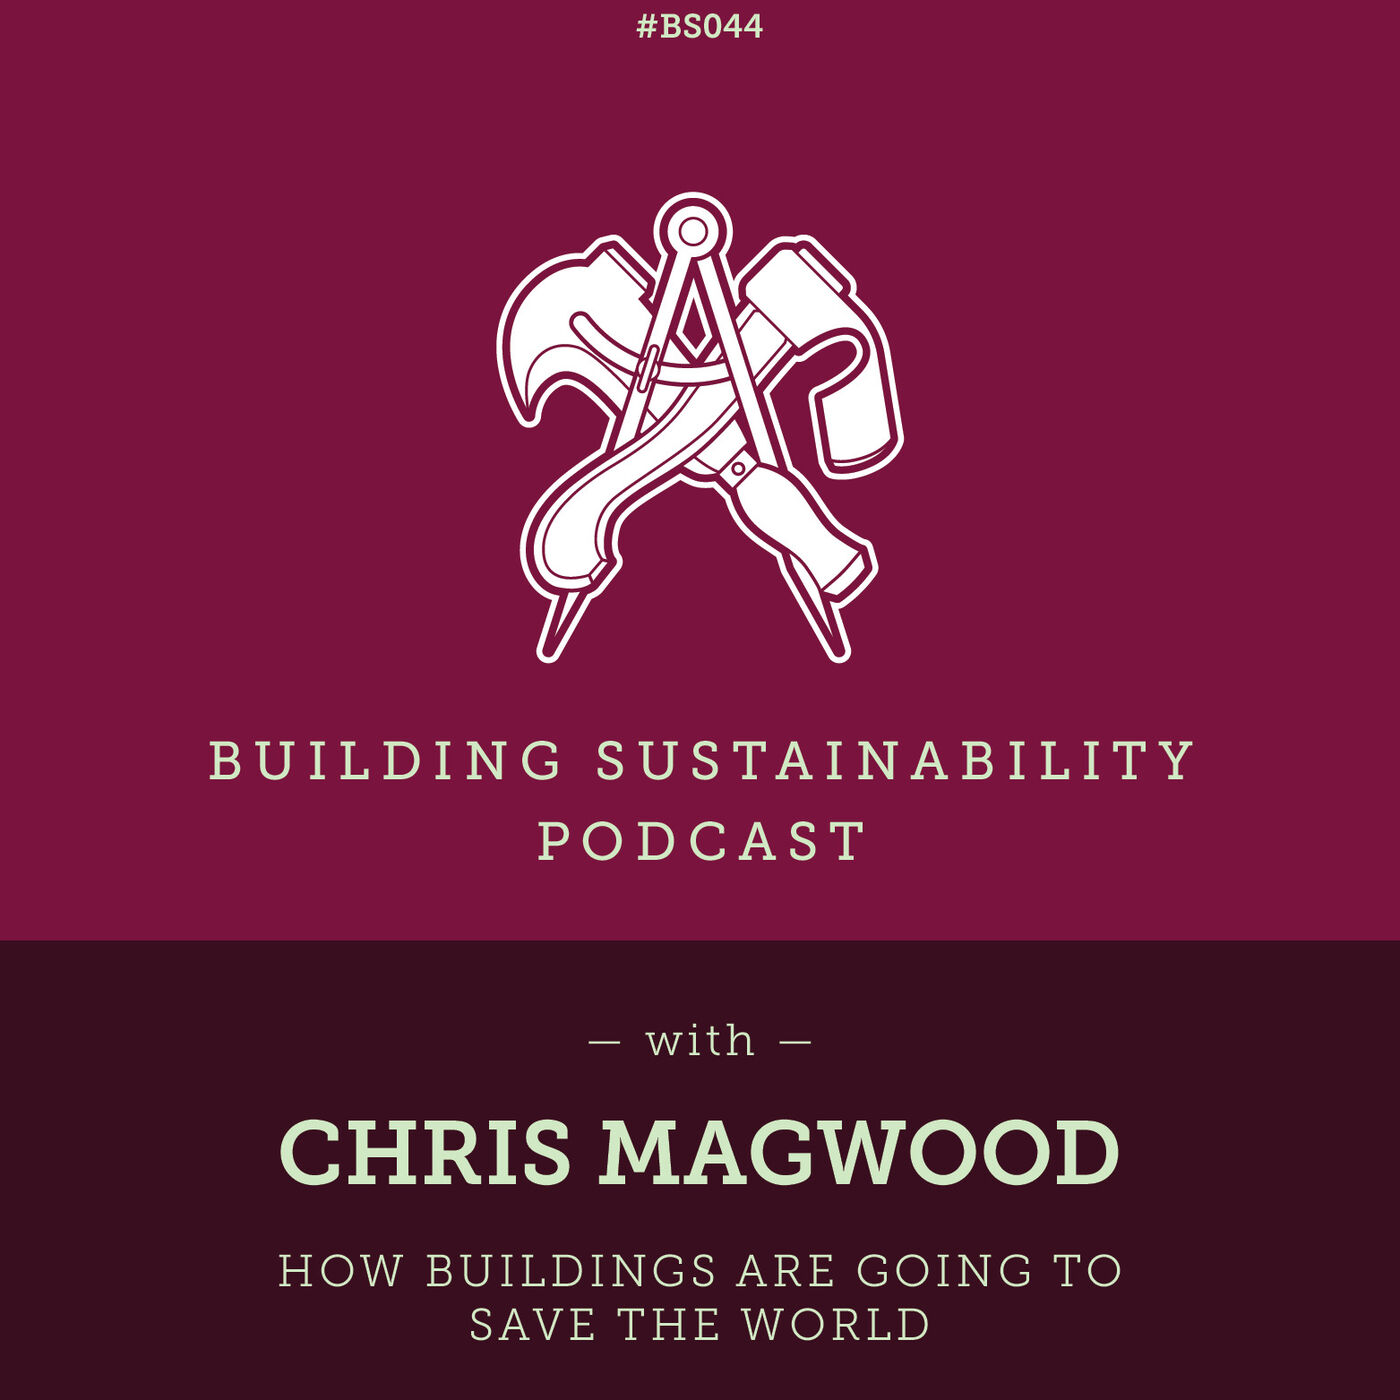 How Buildings can Save the World - Chris Magwood - BS044